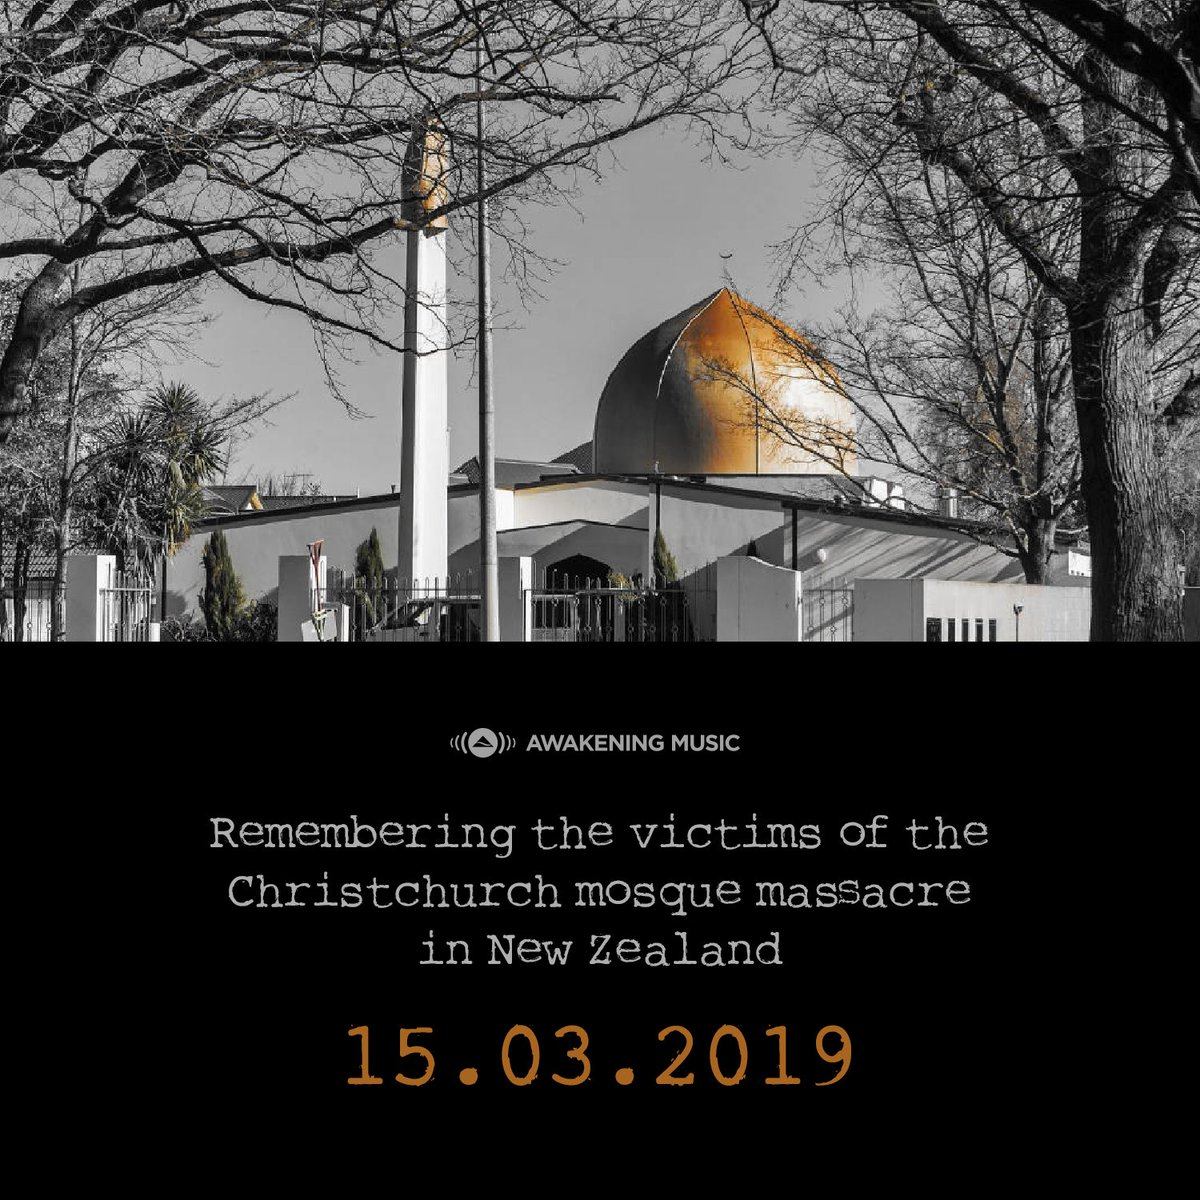 Remembering the victims of the terrorist attack on Al-Noor Mosque in New Zealand today and everyday. May Allah grant your families & loved ones patience. We shall never forget you.   #Christchurch #christchurchshooting #NewZealand #AlnoorMosque https://t.co/o4NaHuB7tu